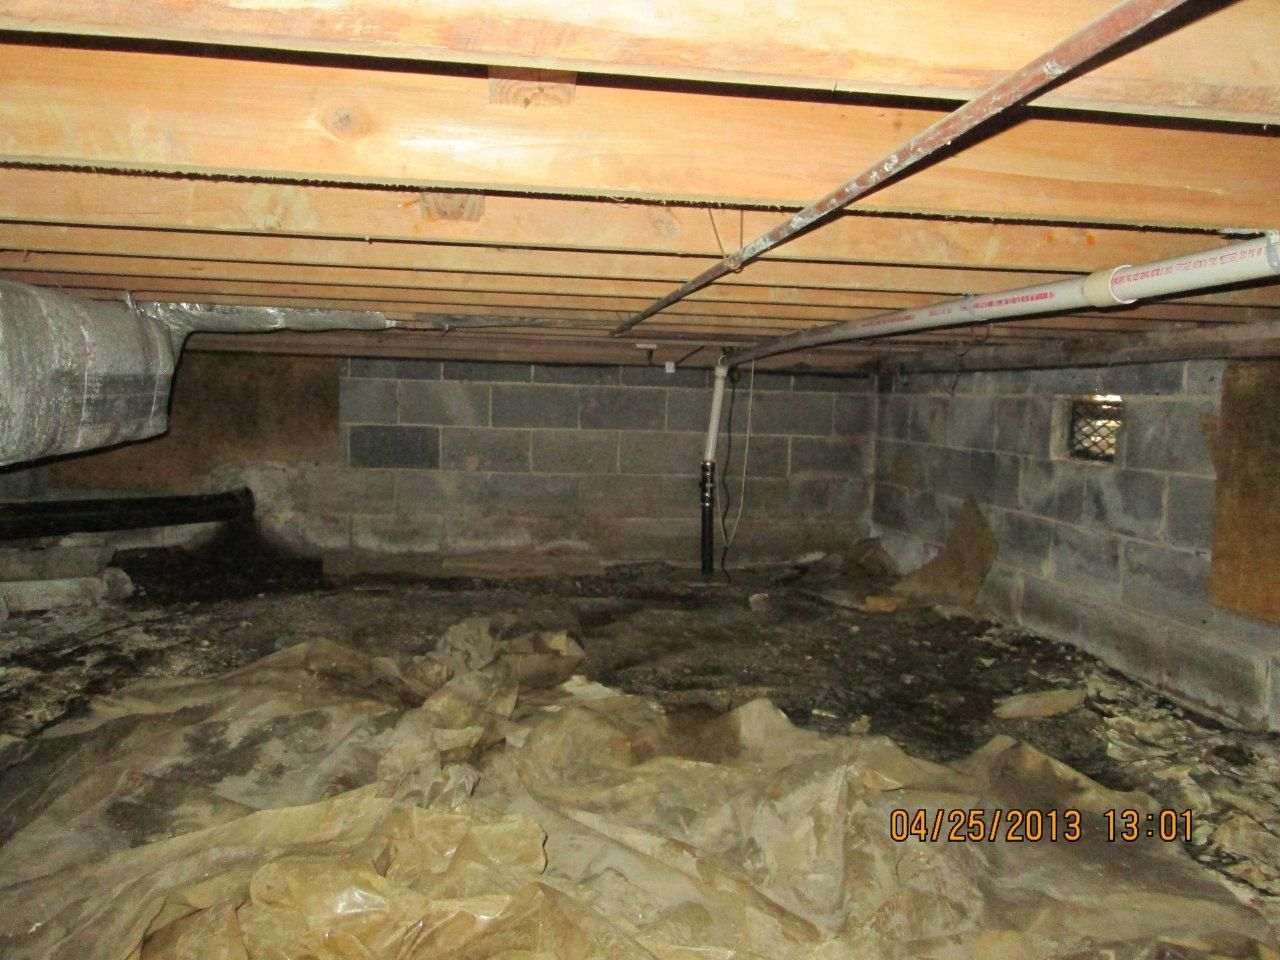 Water Damage In Crawl Spaces Can Lead To Mold And Termites Http Purocleanpers Us Wp Content Uploads 2013 08 Img 1 Remodeling Mobile Homes Crawlspace Termites